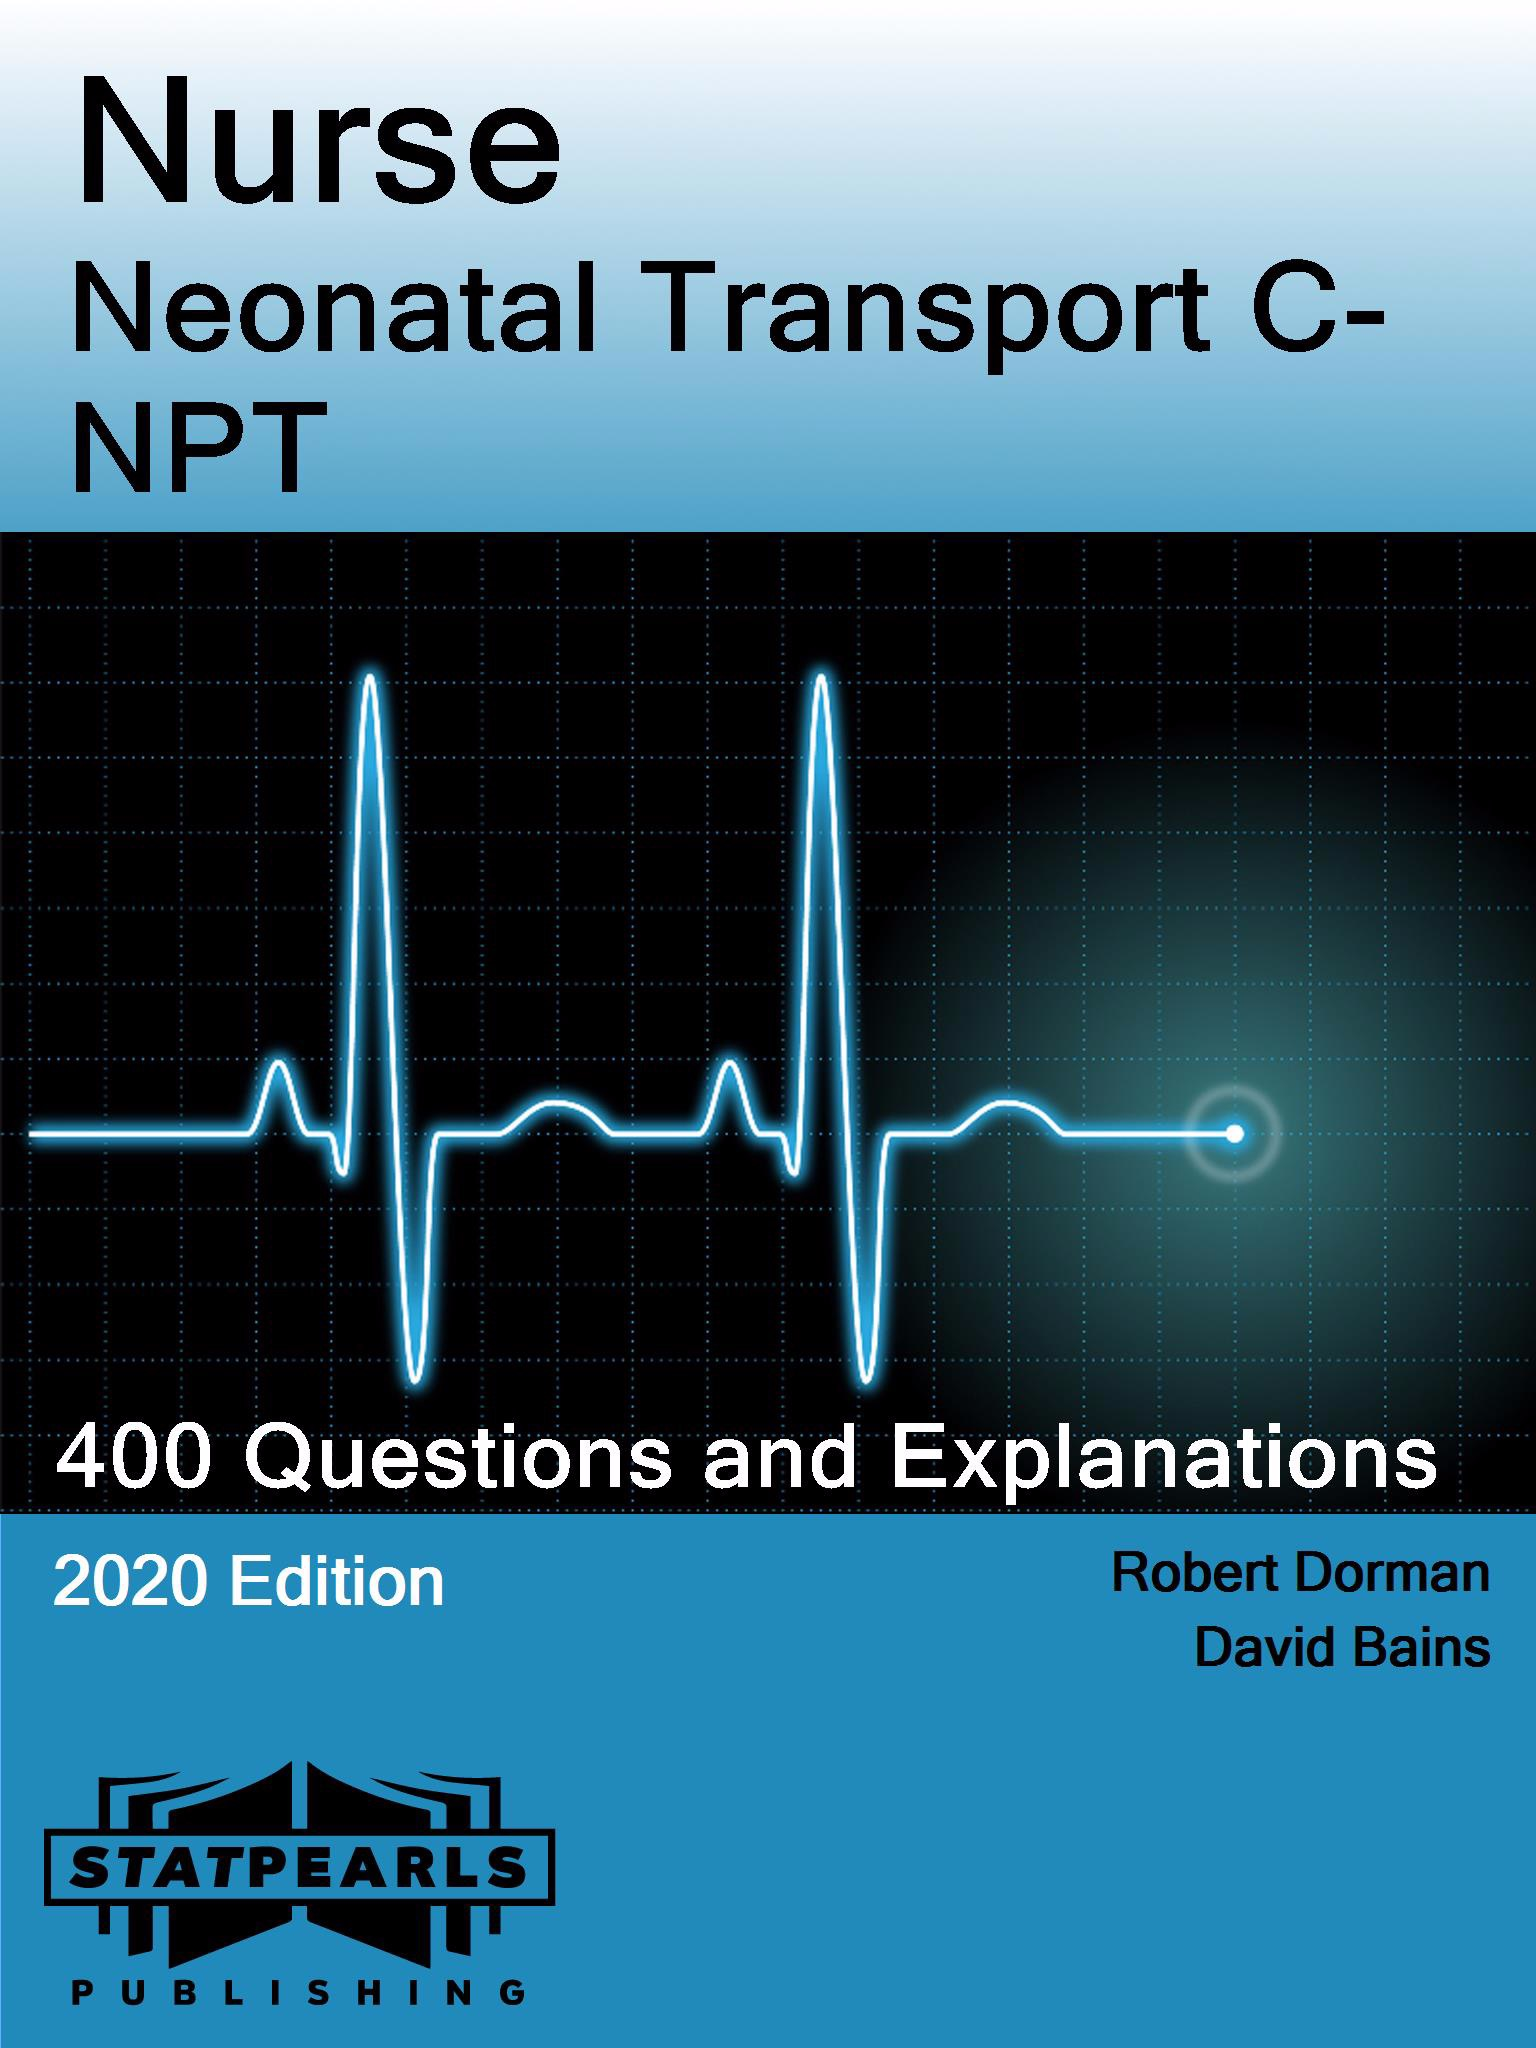 Nurse Neonatal Transport C-NPT